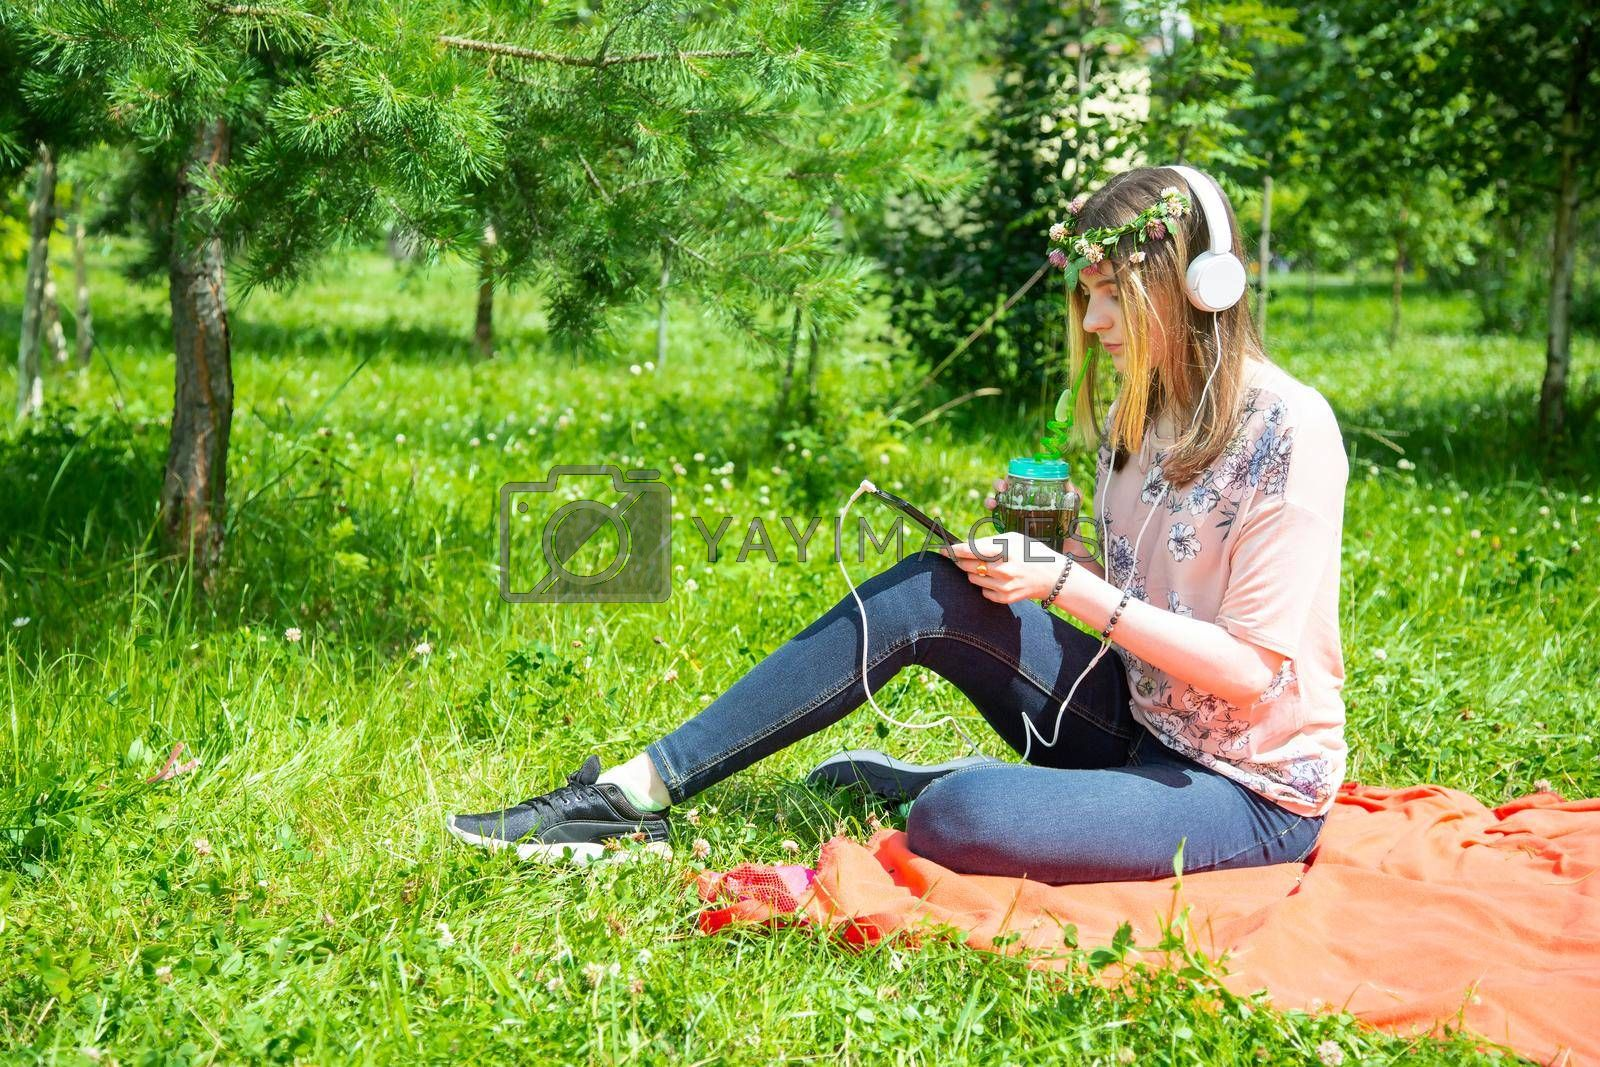 A young girl looks into her mobile phone, writes message while sitting on lawn by galinasharapova